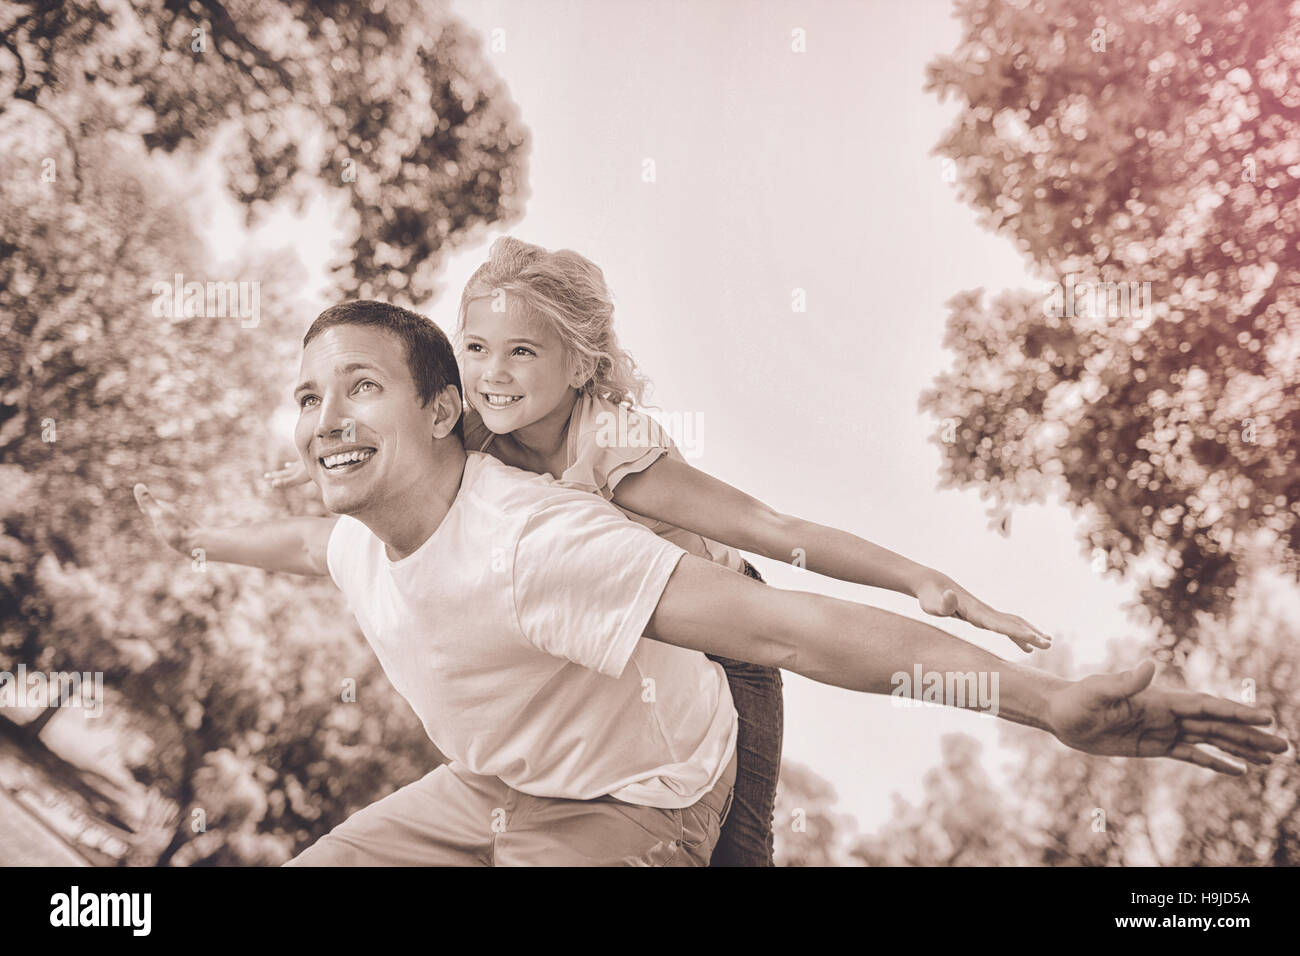 Father giving daughter a piggy back in park - Stock Image